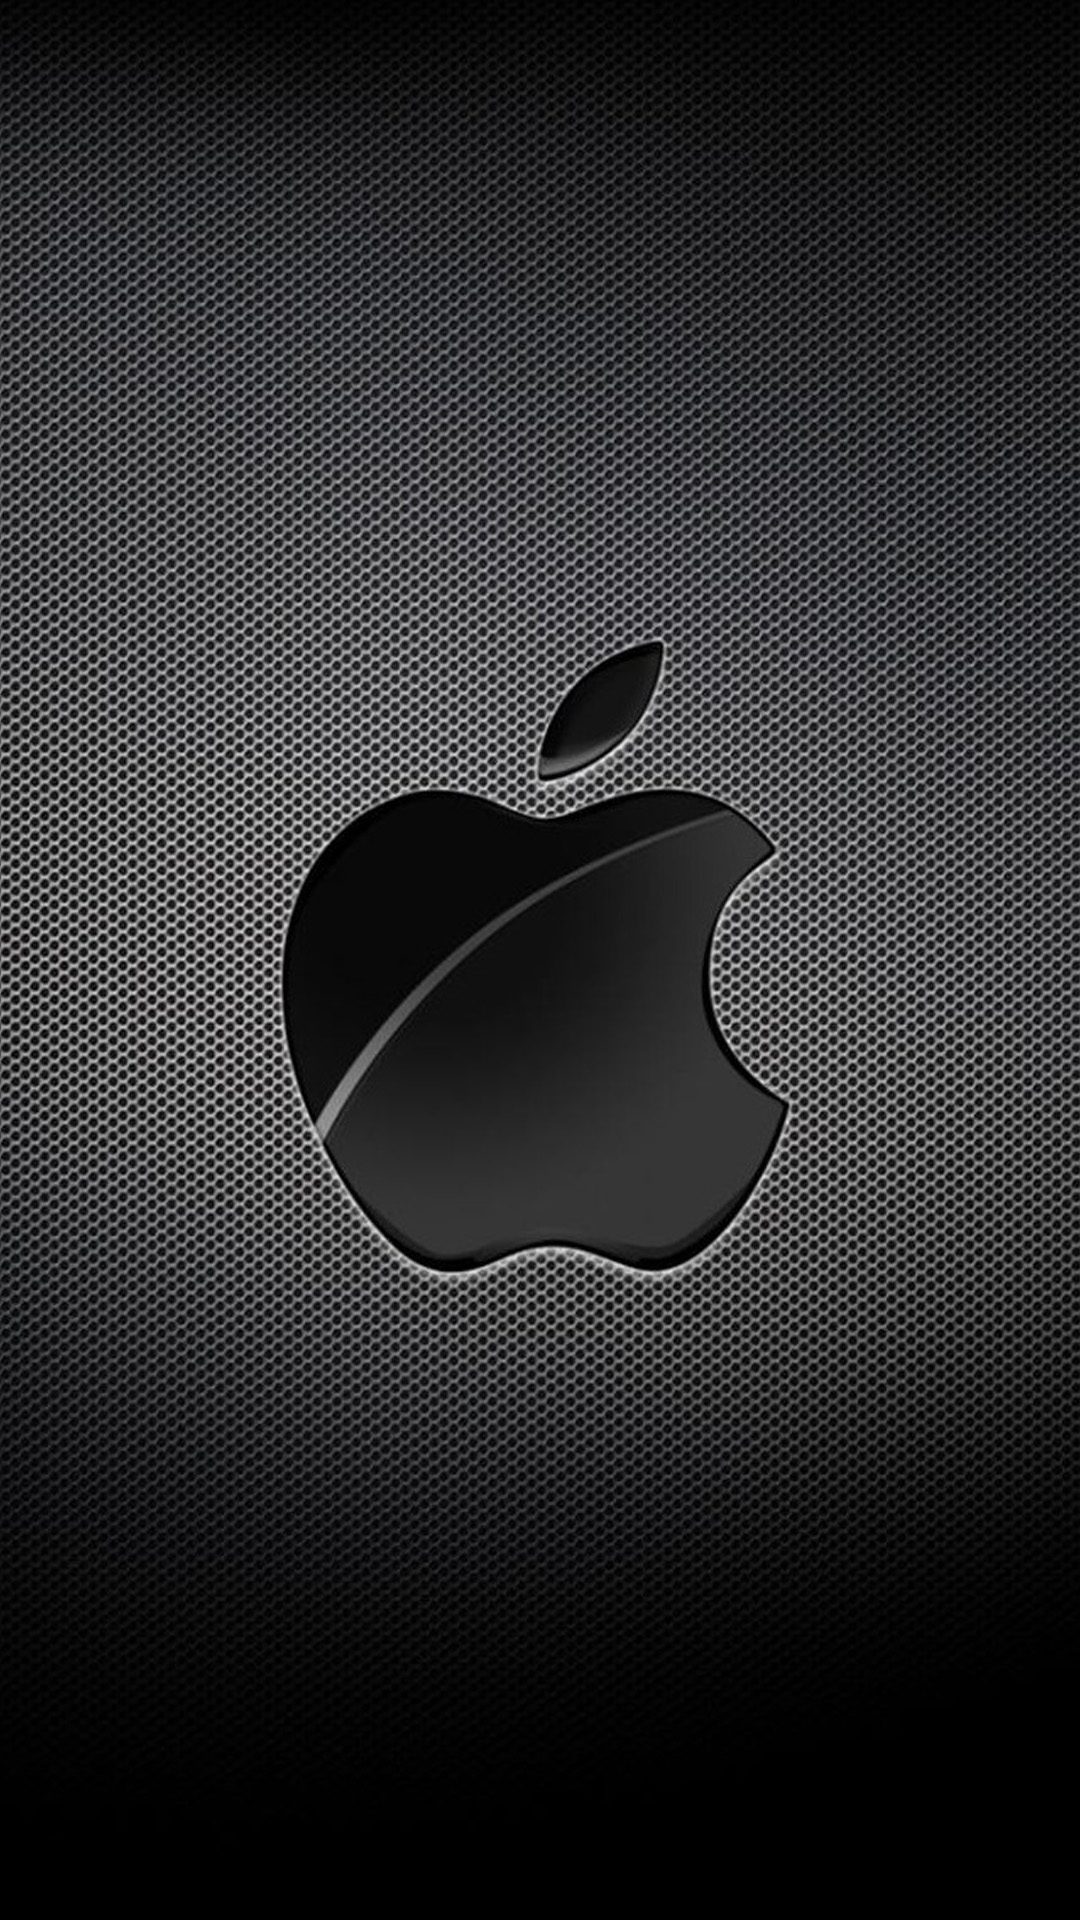 Apple Logo LG G2 Wallpapers HD 267 LG G2 Wallpapers LG Wallpapers 1080x1920